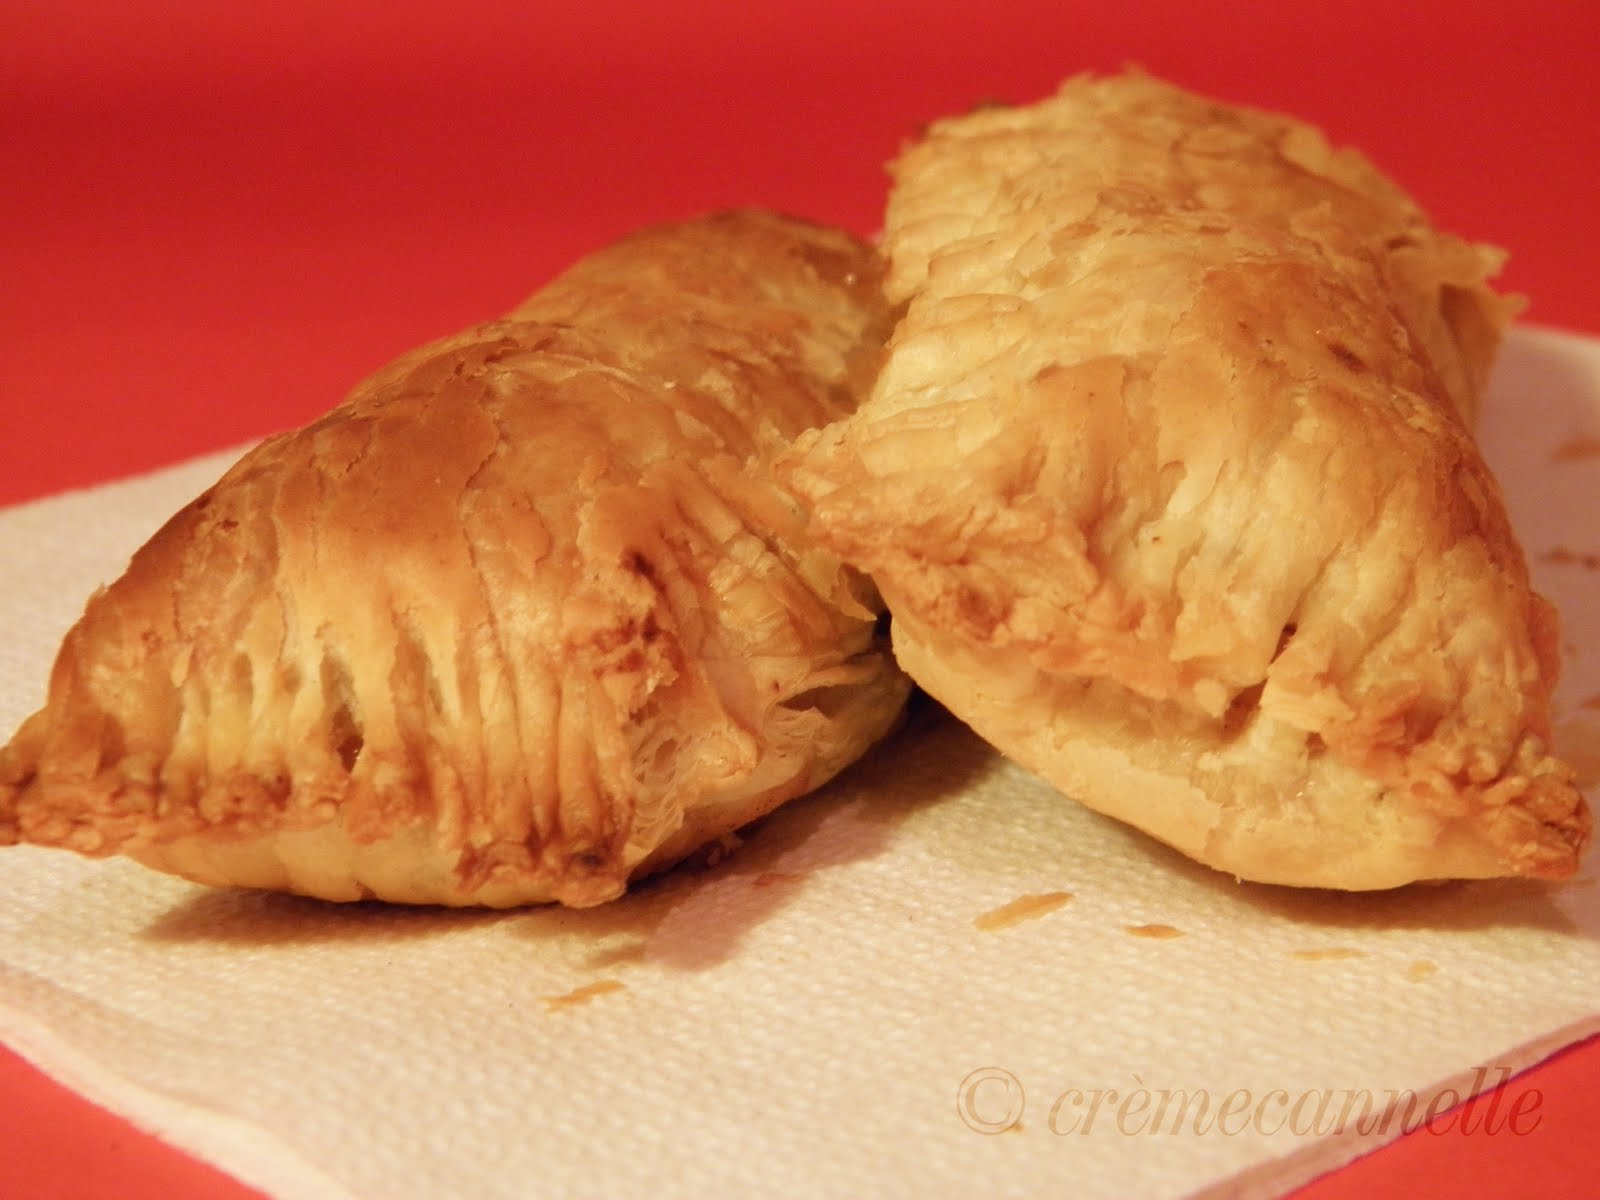 temp: Apple & Pear Cinnamon Turnovers